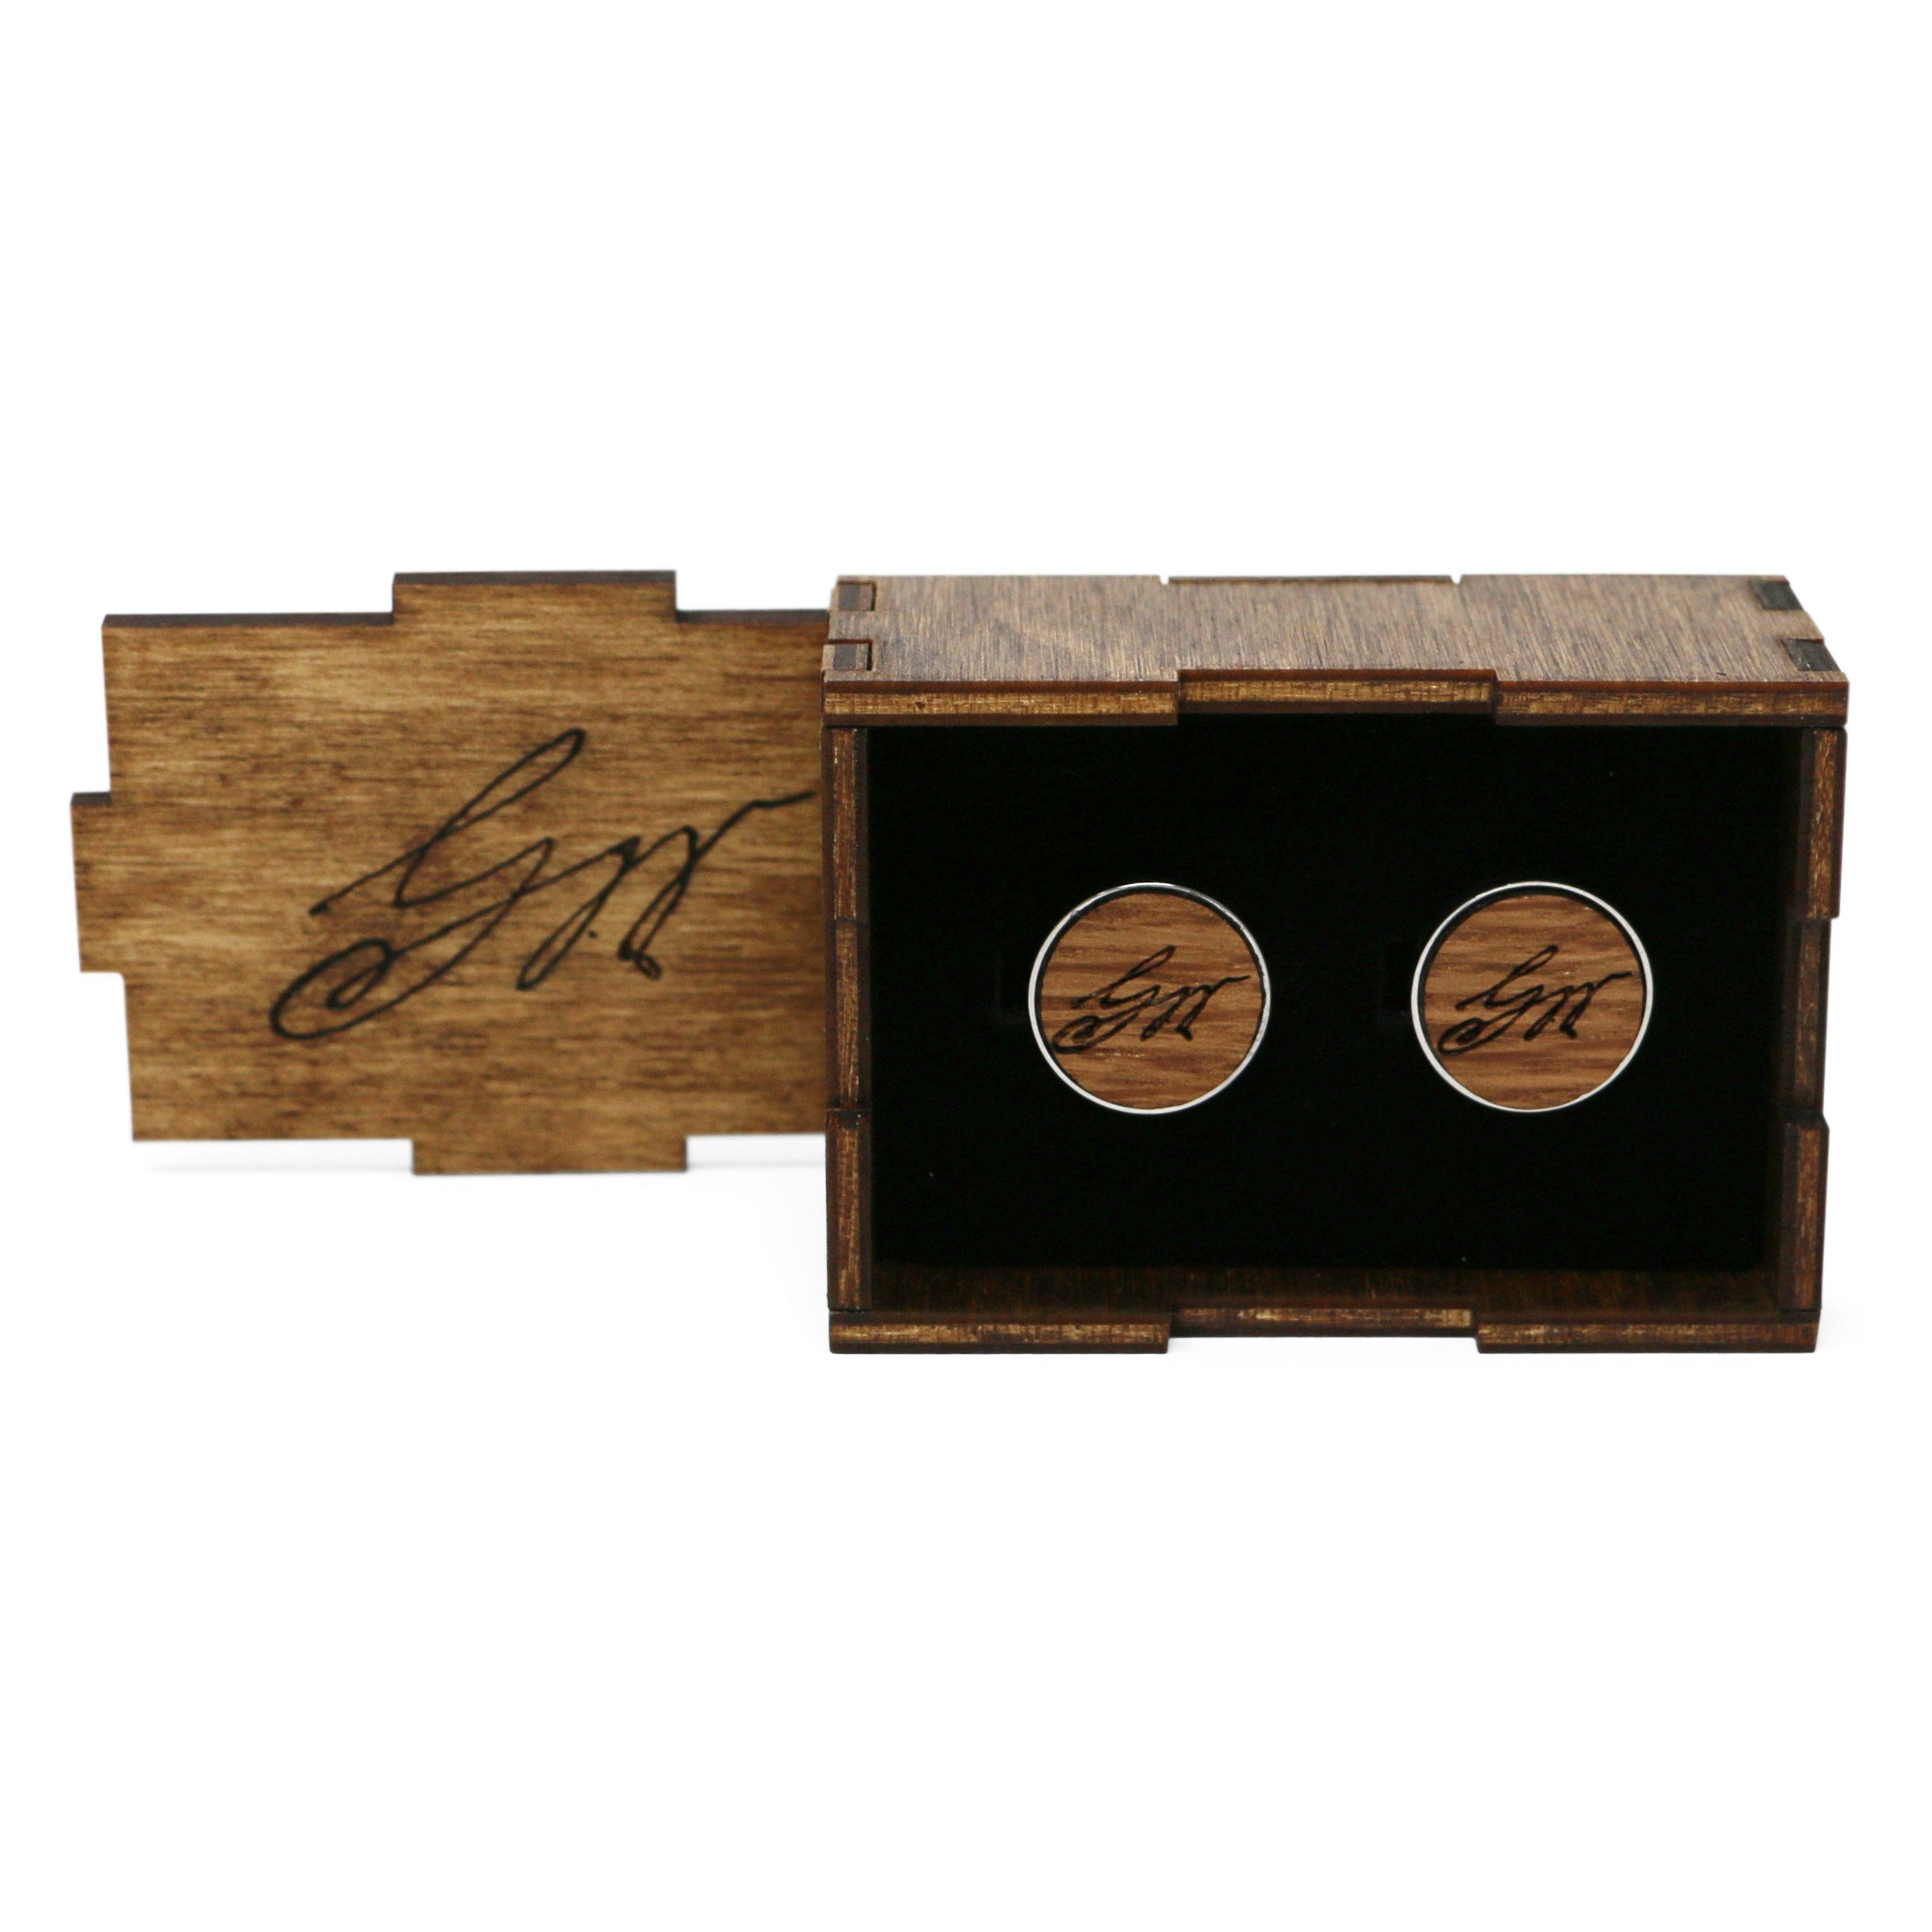 George Washington Wood Cufflinks